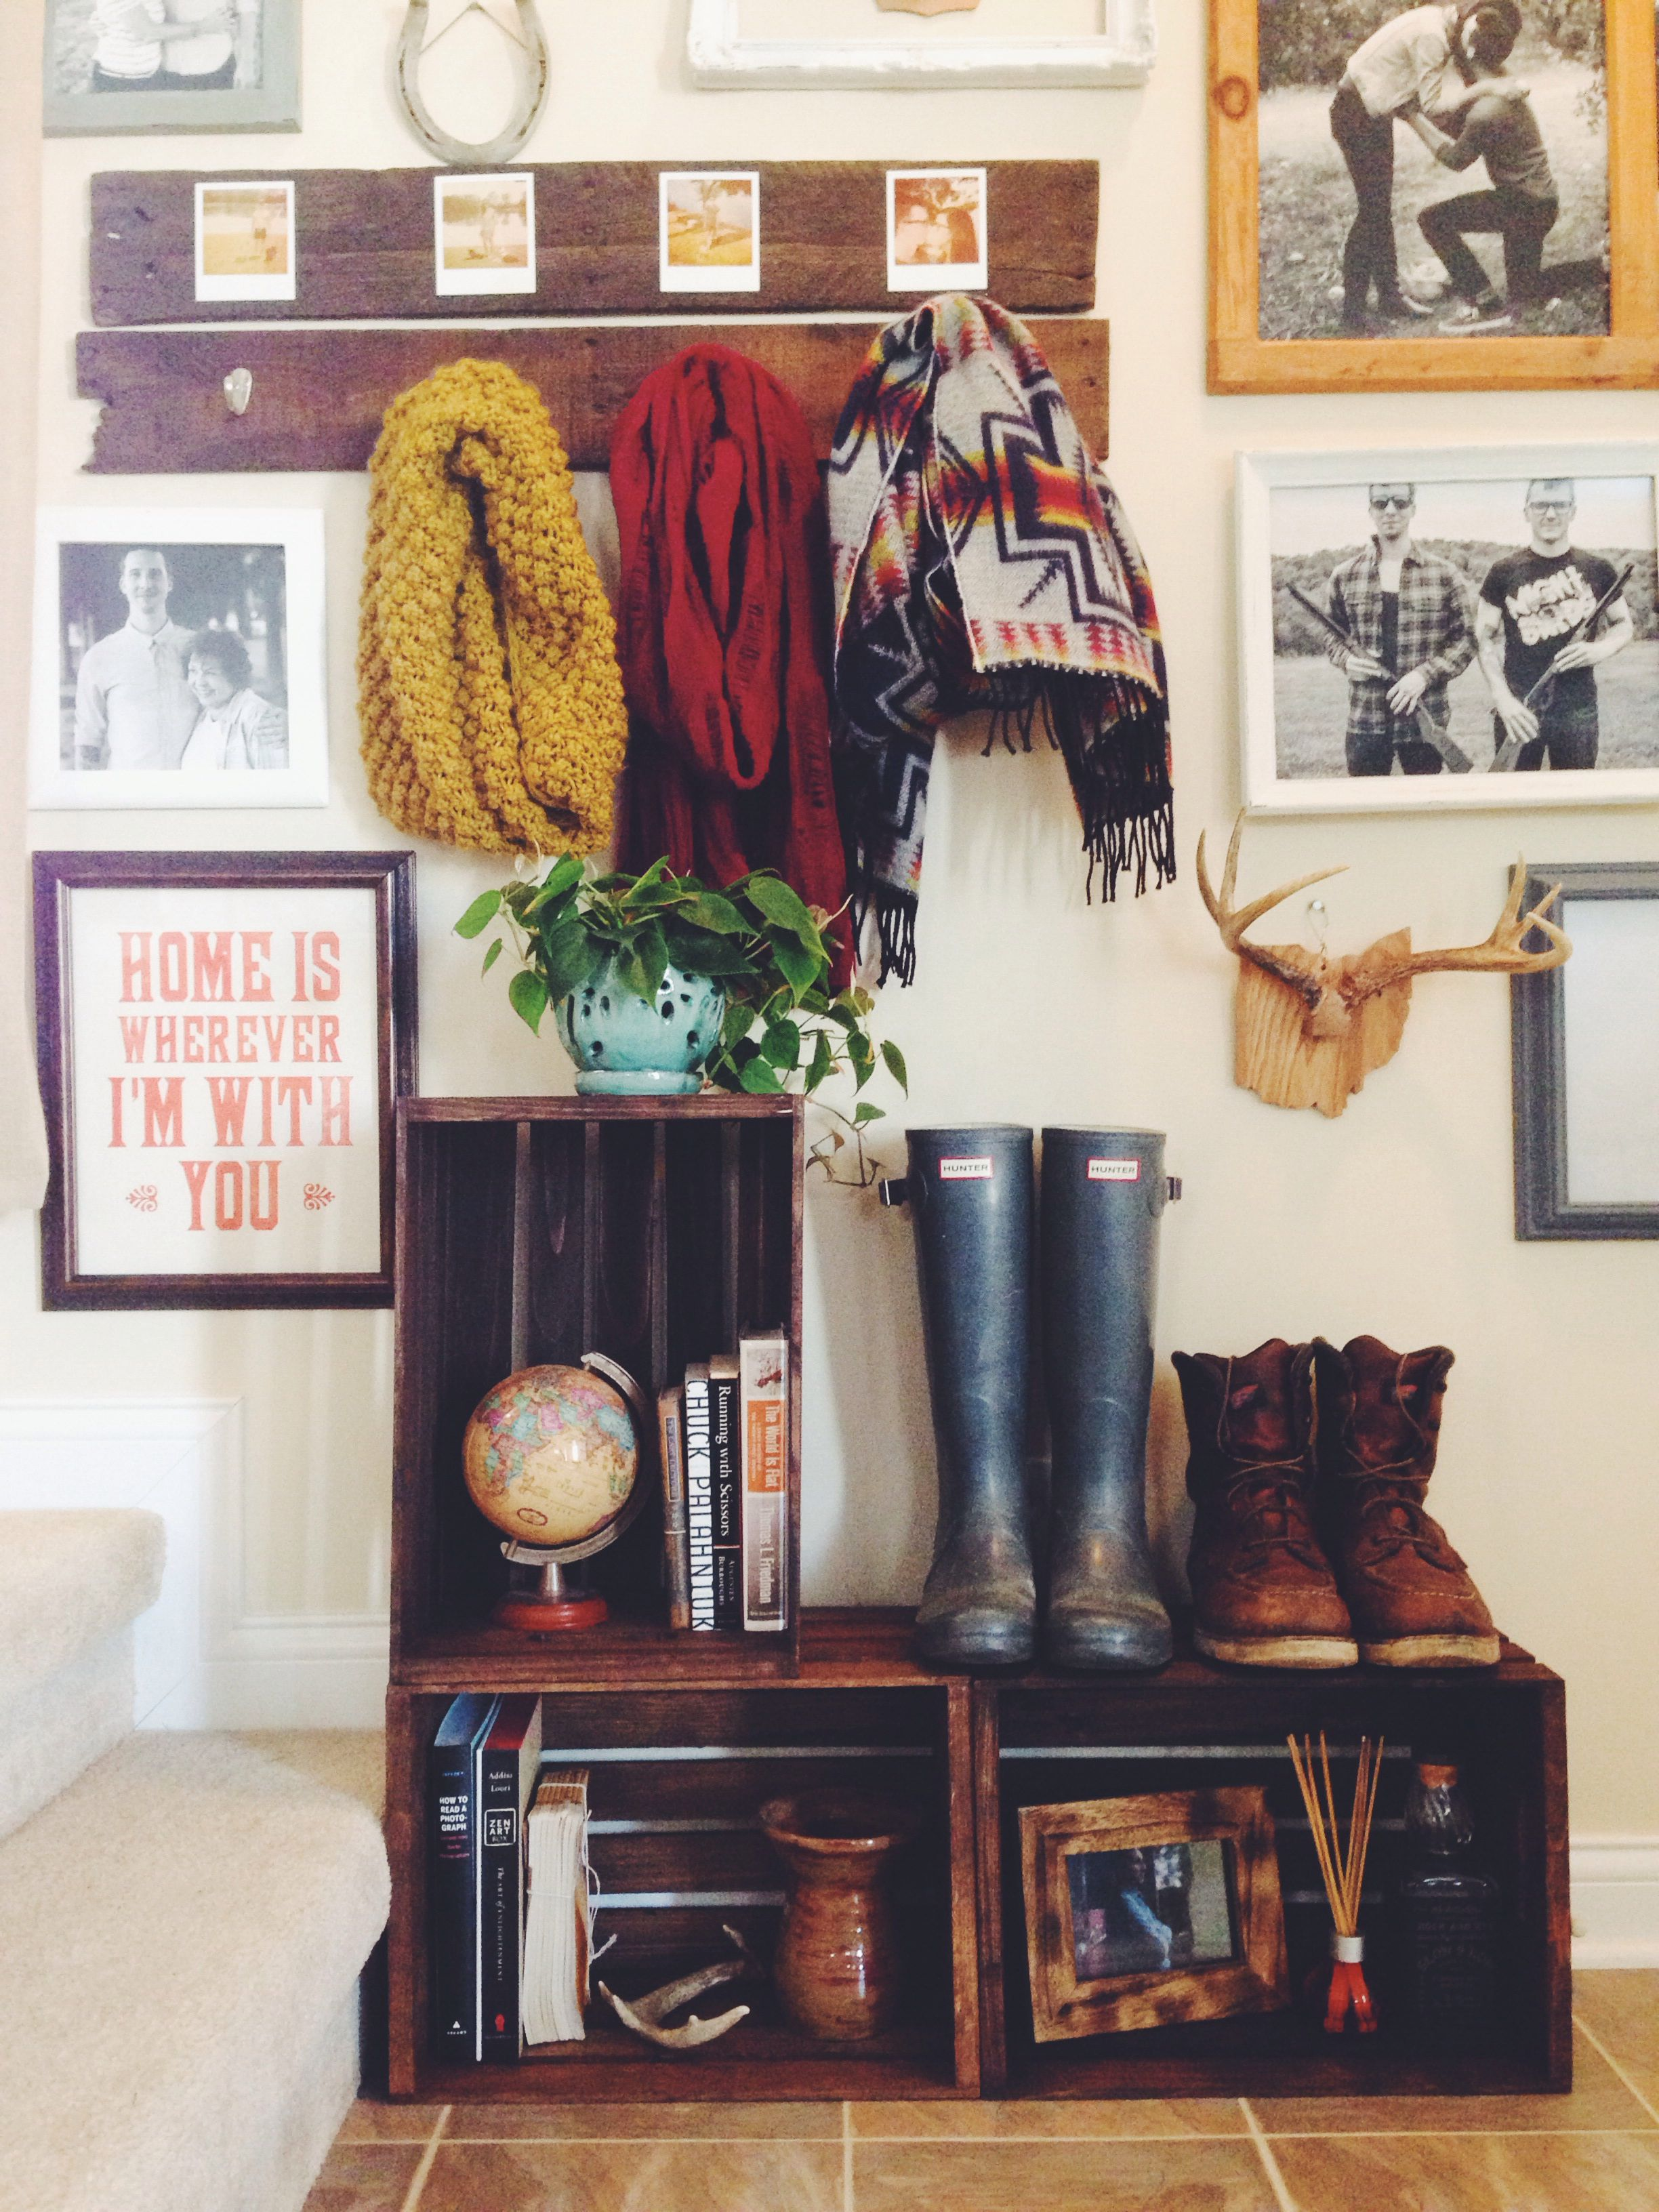 Storage ideas for hallway  Pin by Livlin on Bohemianvintage home  Pinterest  Crates Storage